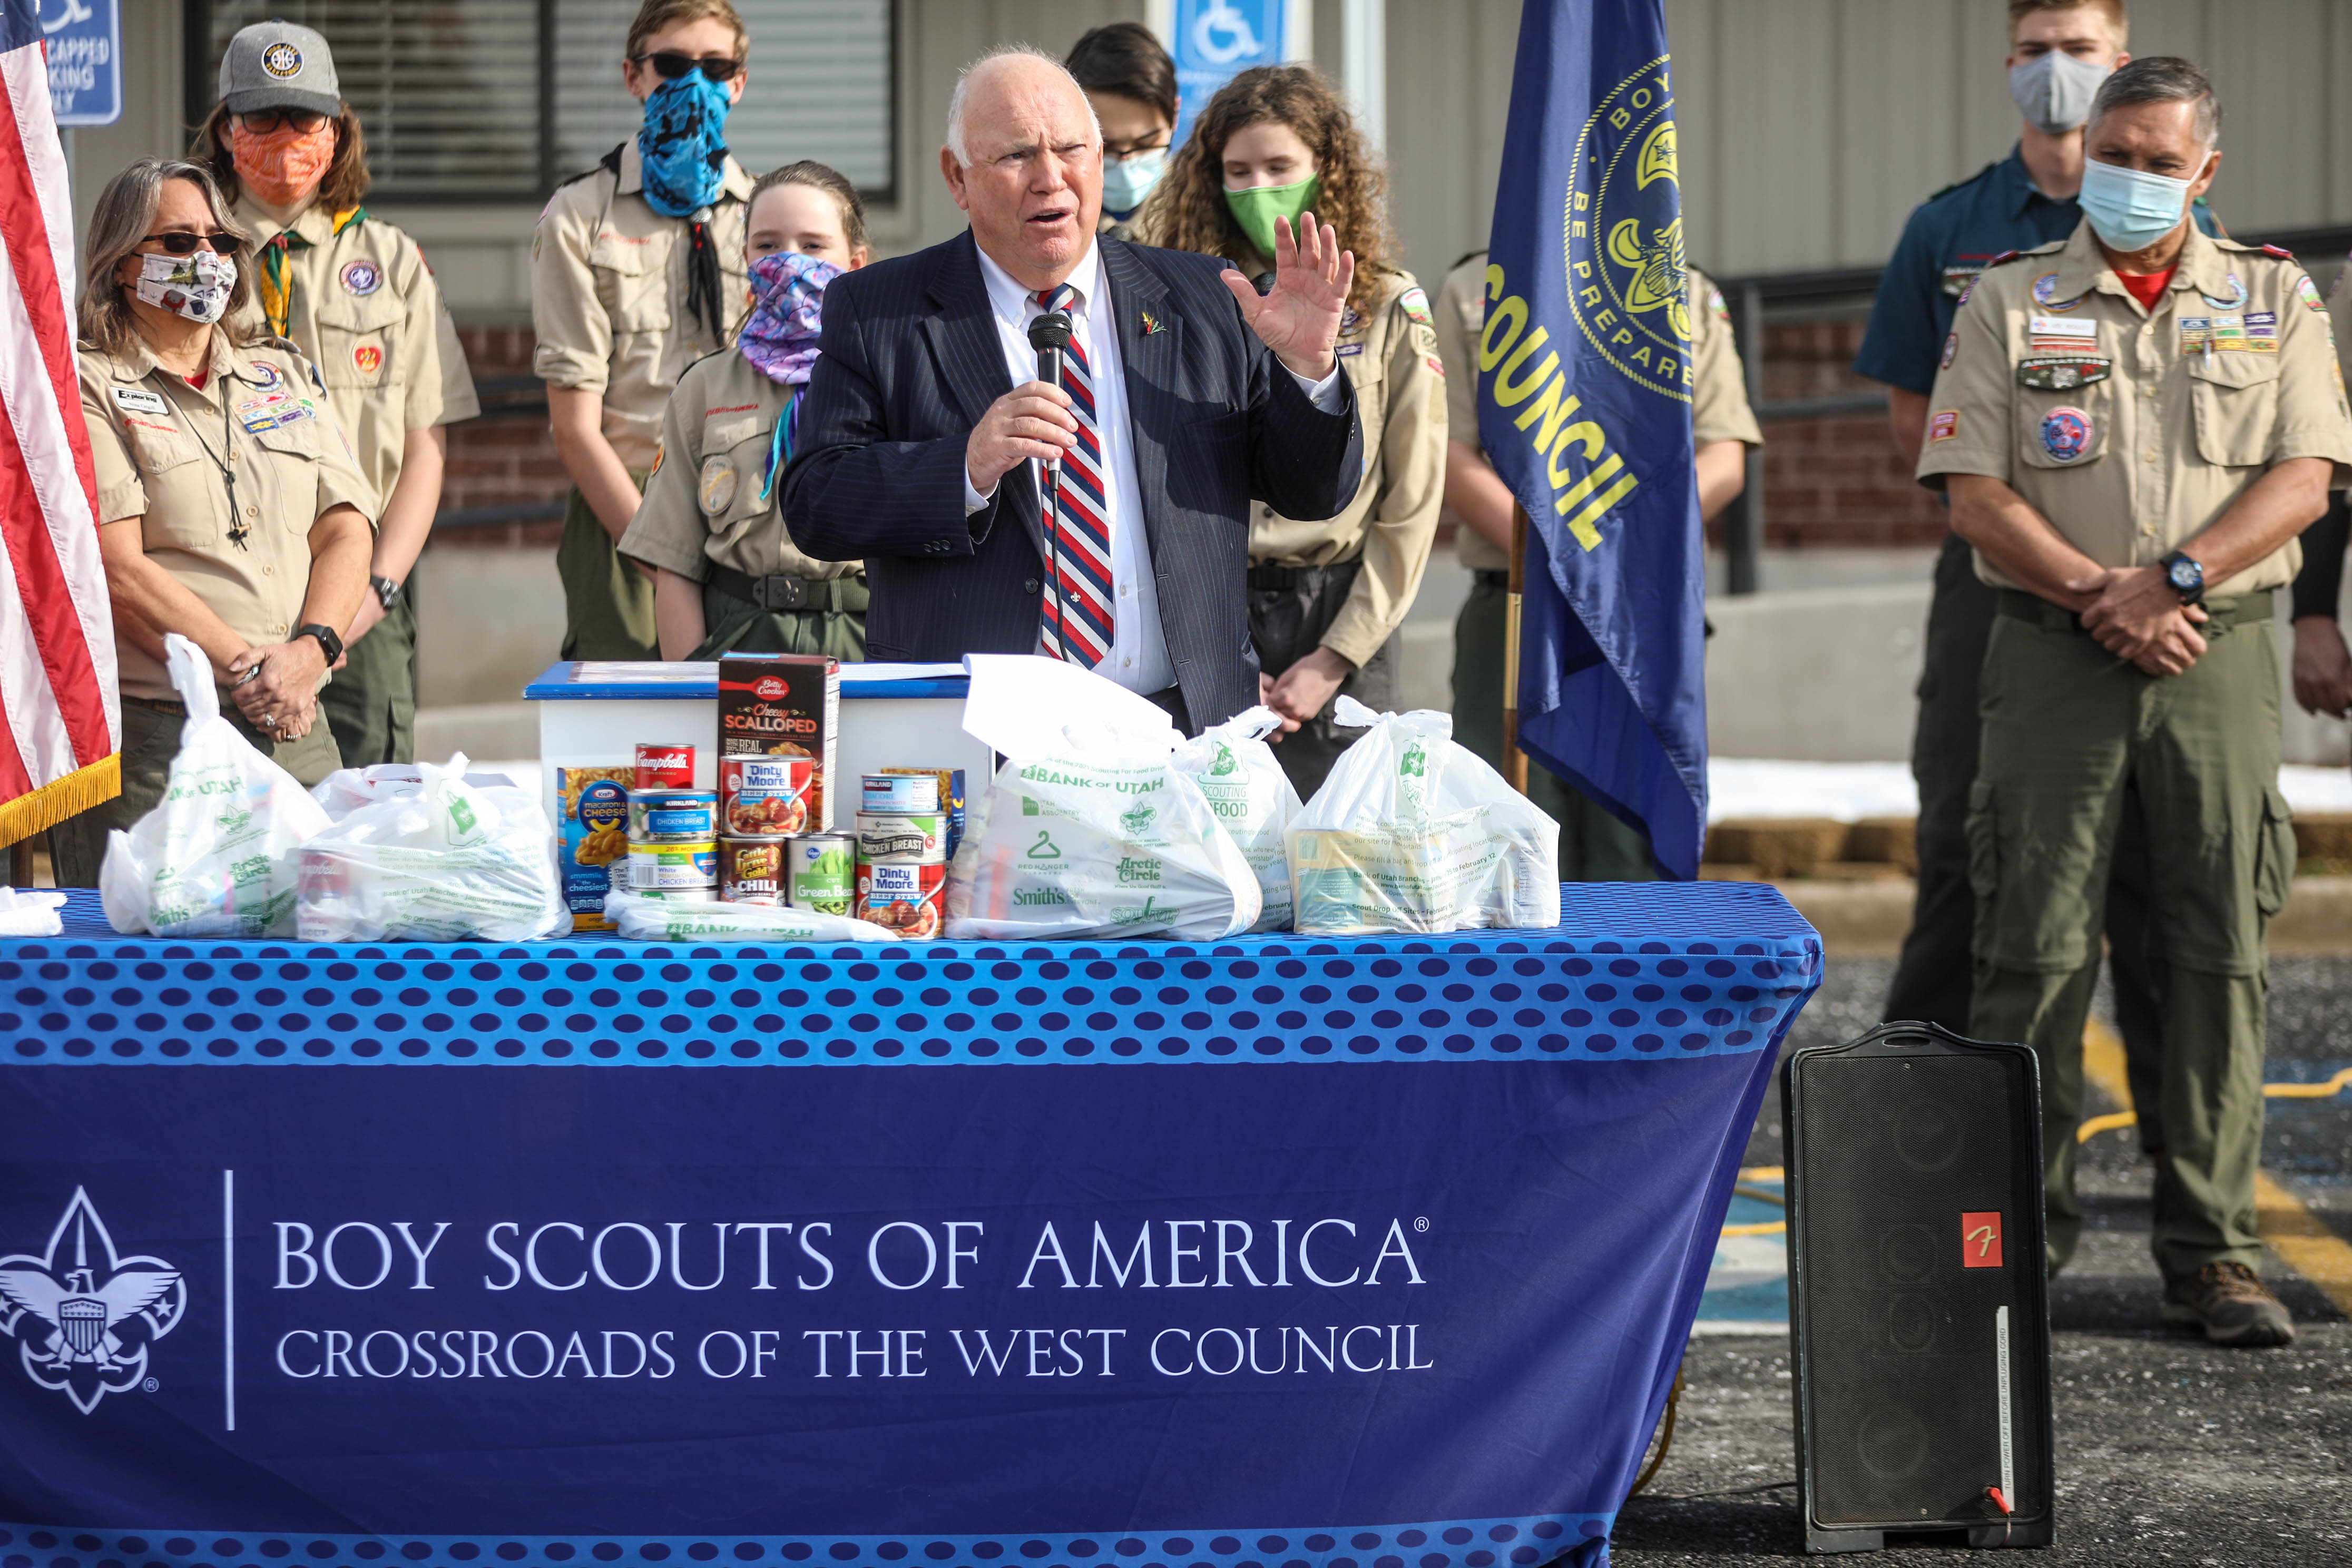 Bountiful City Mayor Randy Lewis speaks at the Boy Scouts of America Crossroads of The West Council governor's proclamation event designating Utah's official Scouting for Food Drive at the Bountiful Food Pantry in Bountiful on Monday, Jan. 25, 2021.